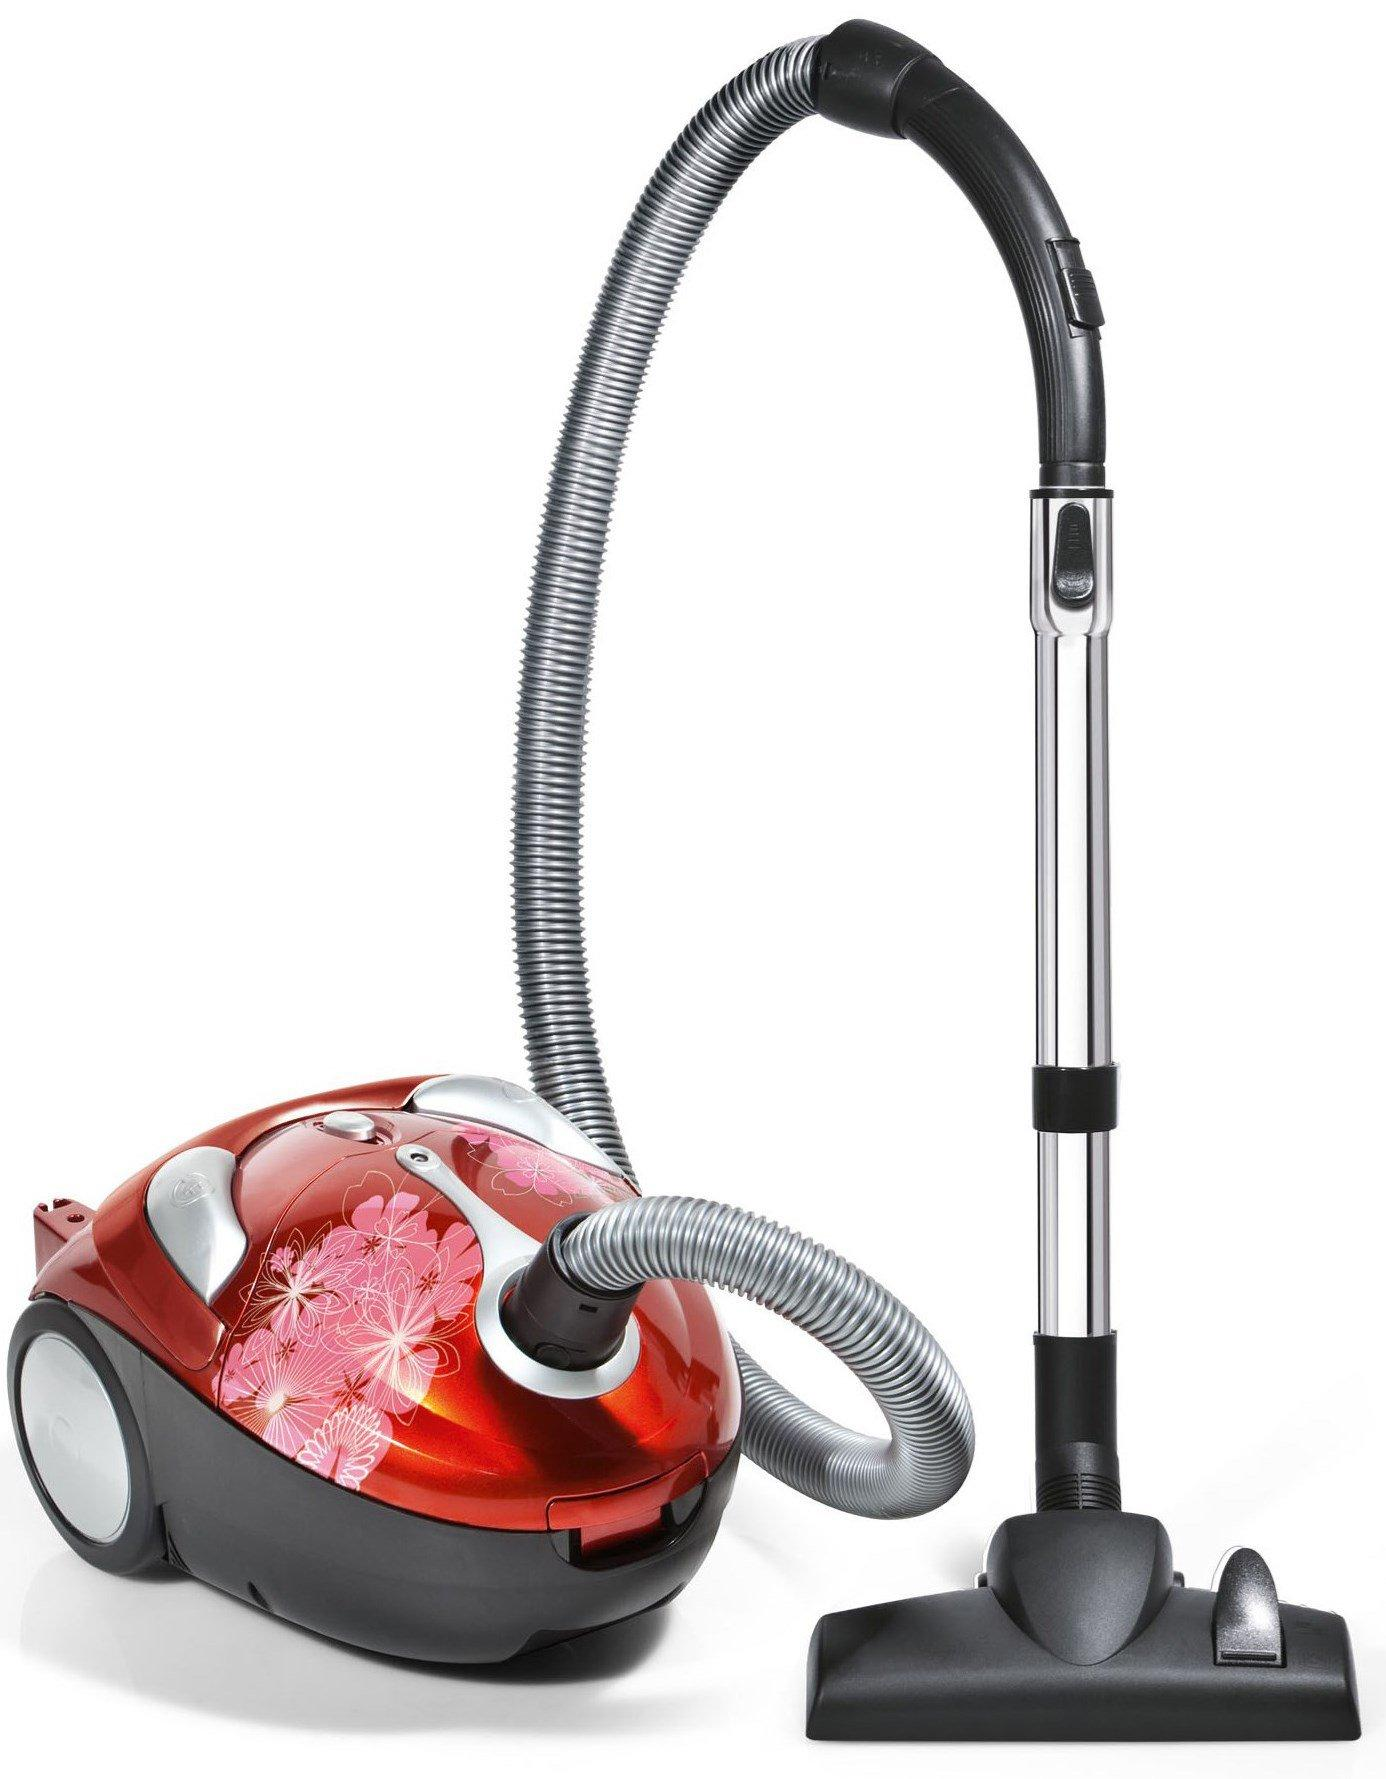 Tattoo Crimson Bouquet Bagged Canister Vacuum1